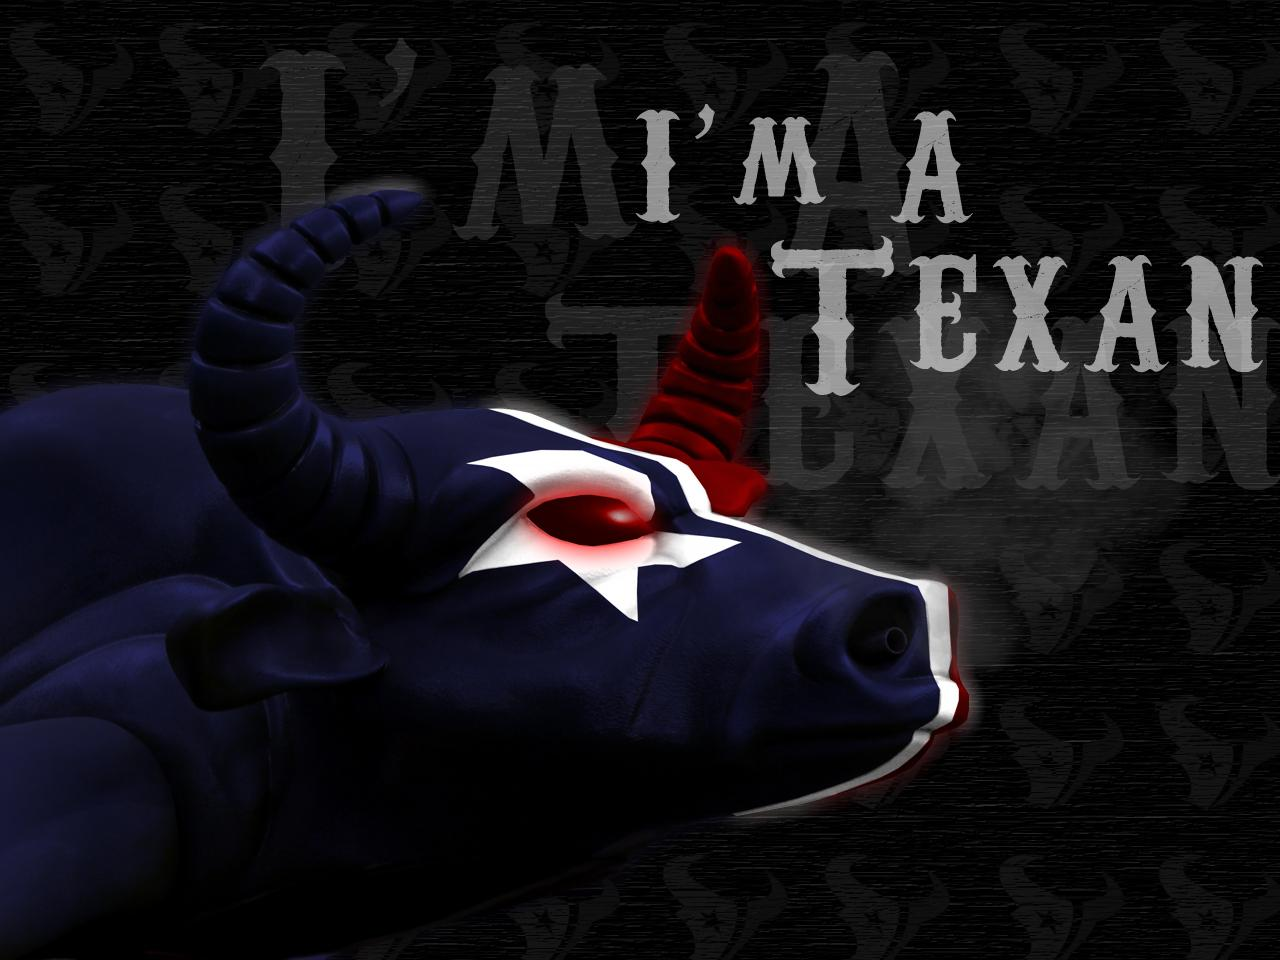 uploaded in Houston Texans Wallpaper 2015 you can download it 1280x960